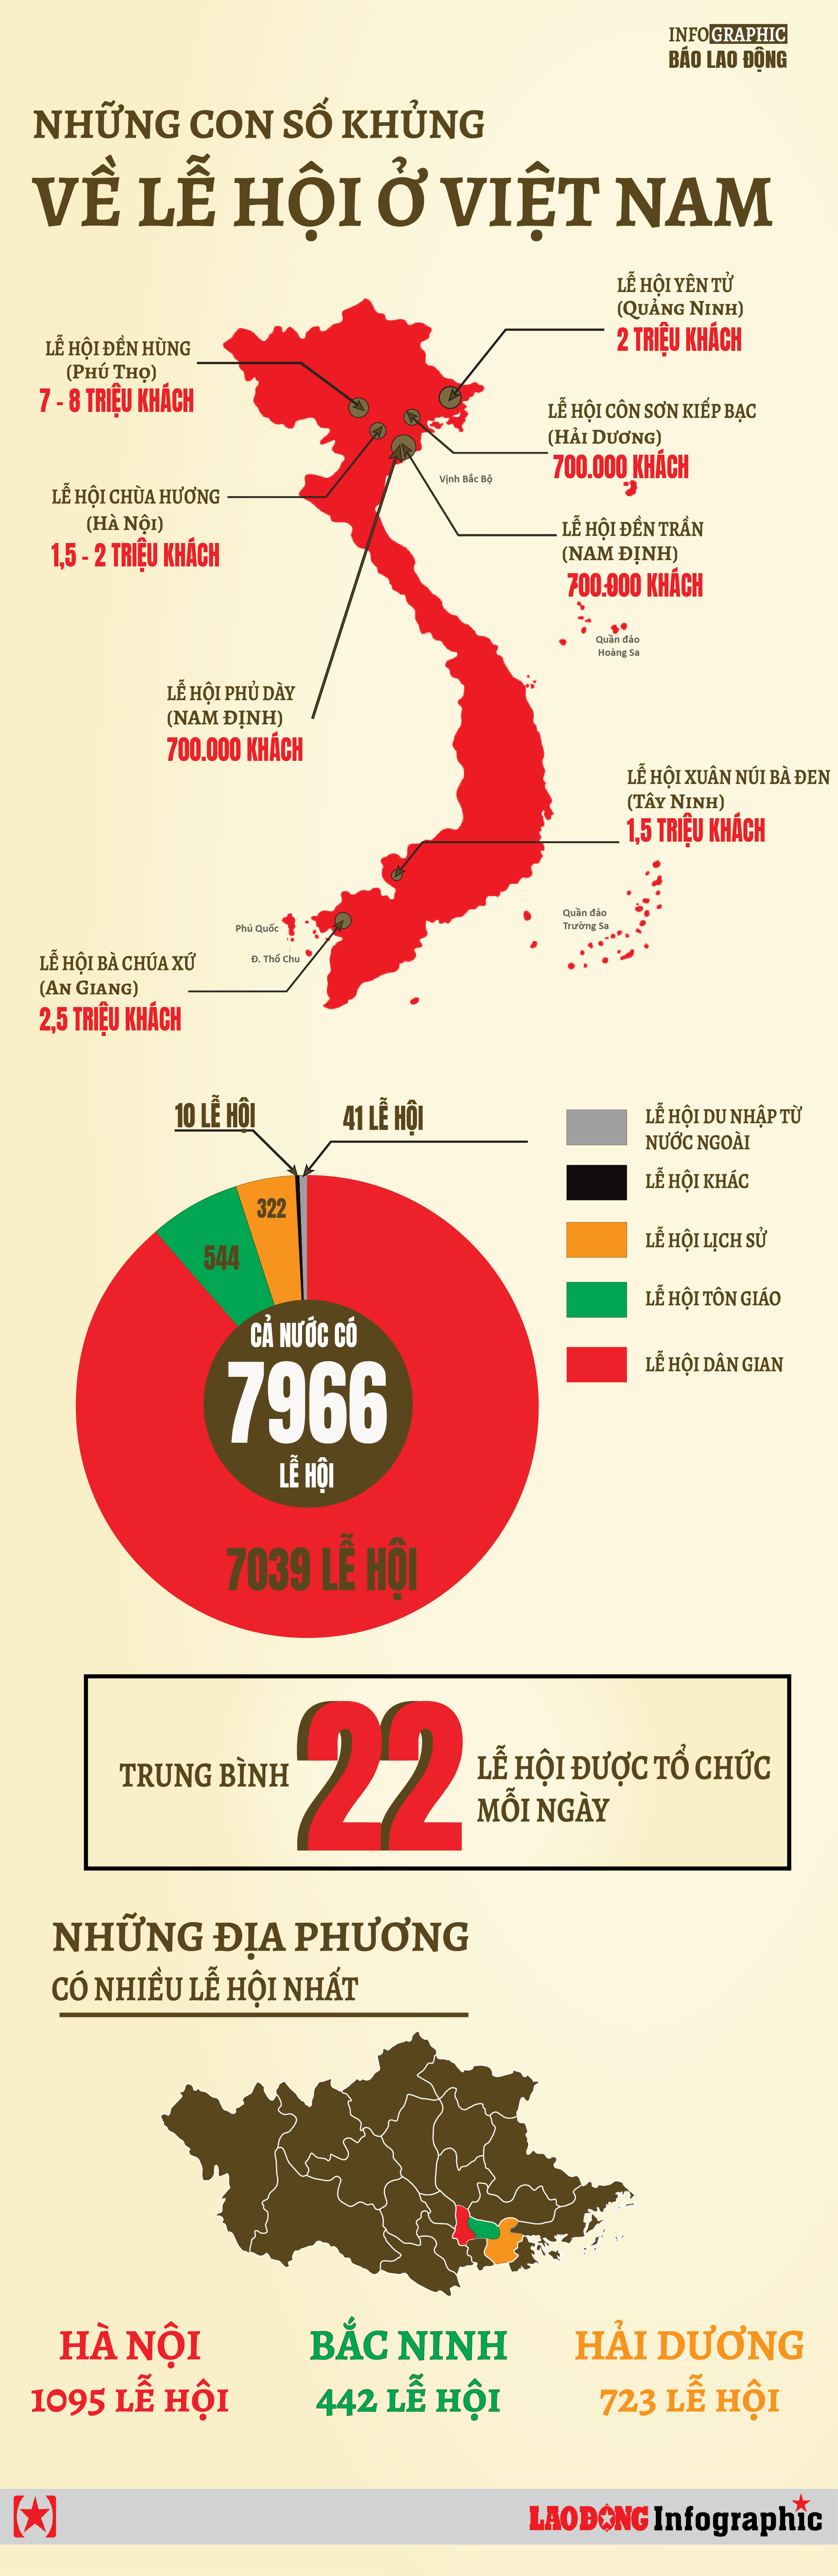 infographic nhung con so khung ve le hoi o viet nam